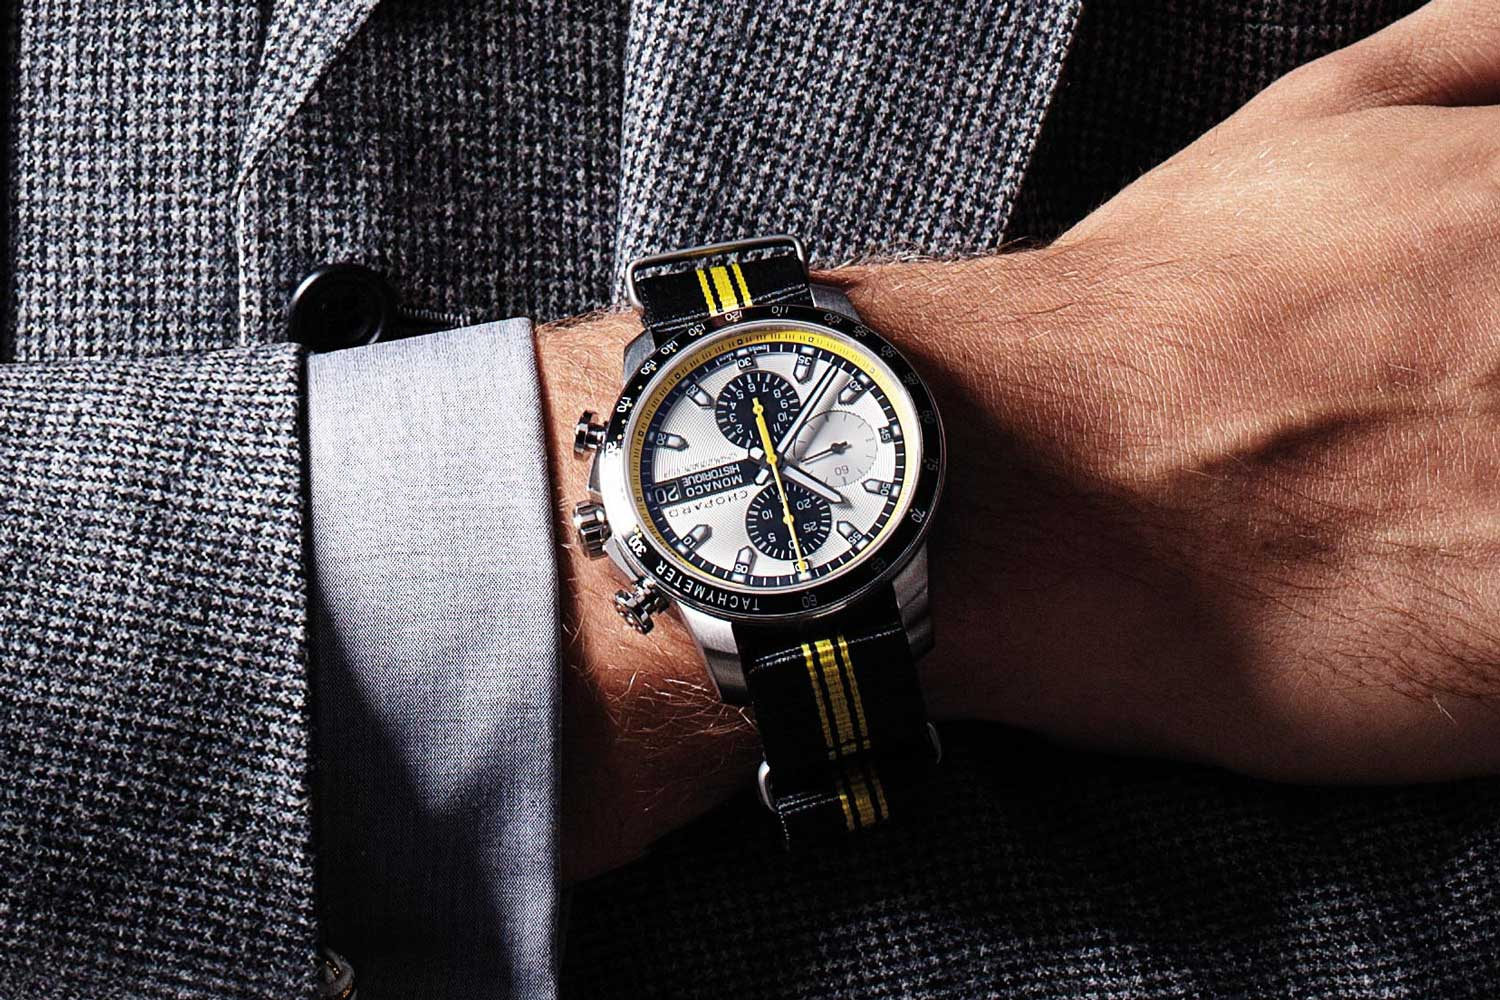 Chopard Grand Prix de Monaco Historique Chronograph with black and yellow 'NATO' strap (Image © Revolution)